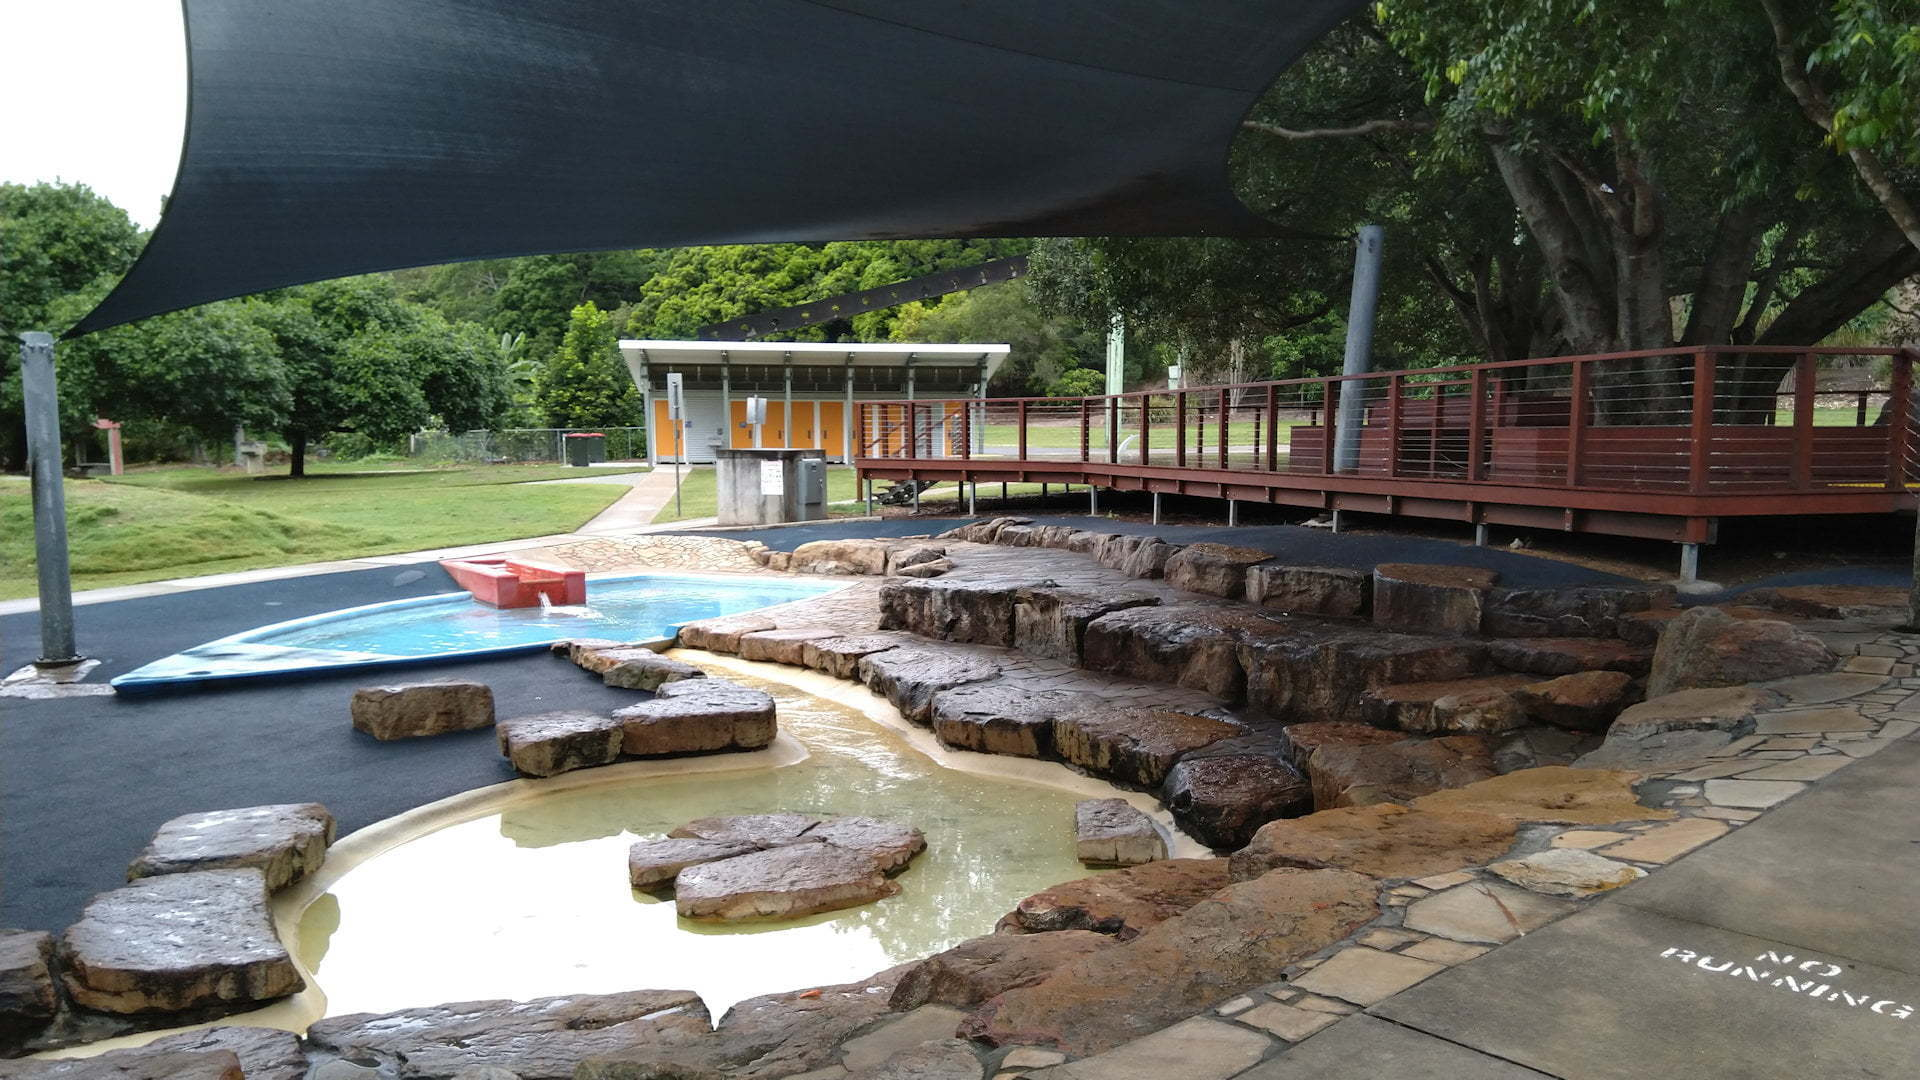 Water park and deck around a tree at Rocks Riverside Park